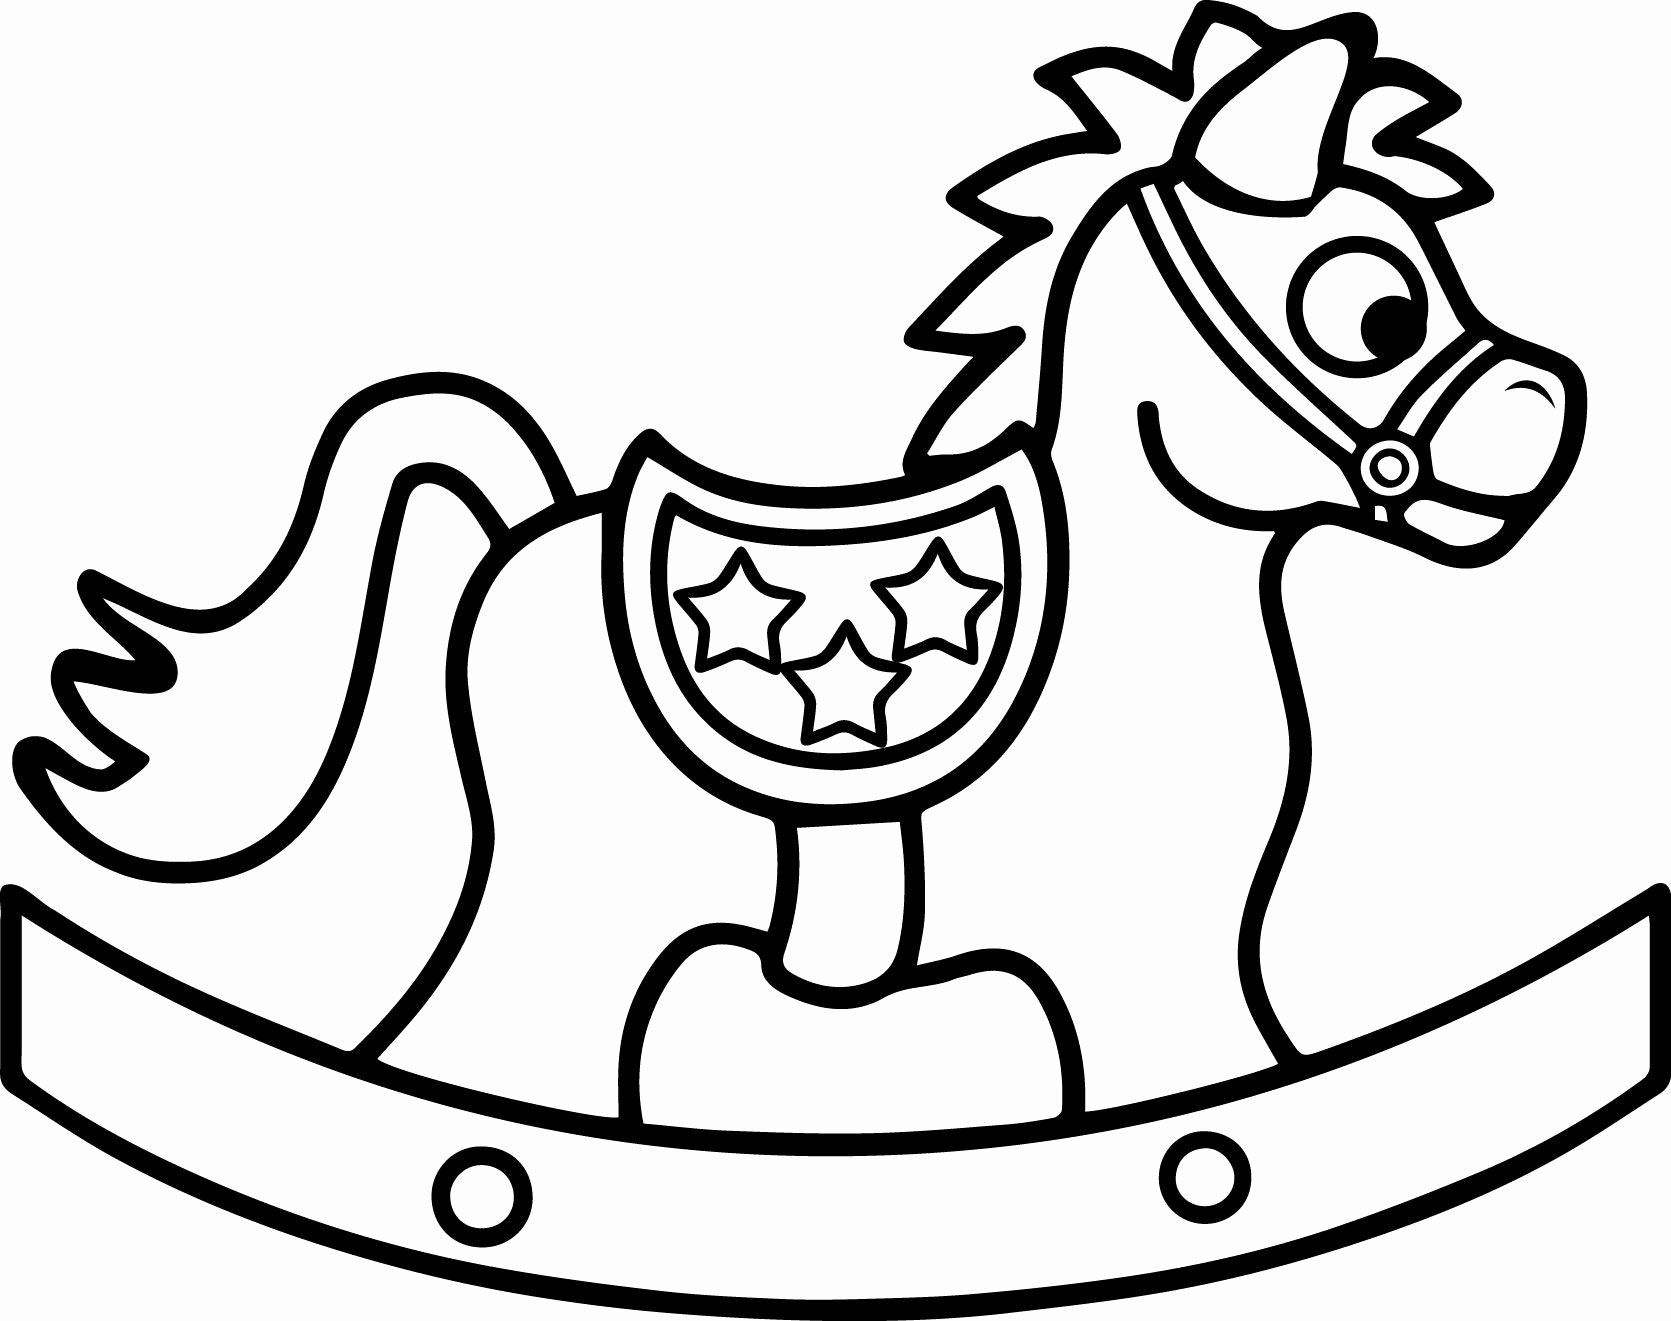 Christmas Horse Coloring Page New Rocking Horse Coloring Pages At Getdrawings Horse Coloring Pages Horse Coloring Witch Coloring Pages [ 1321 x 1671 Pixel ]